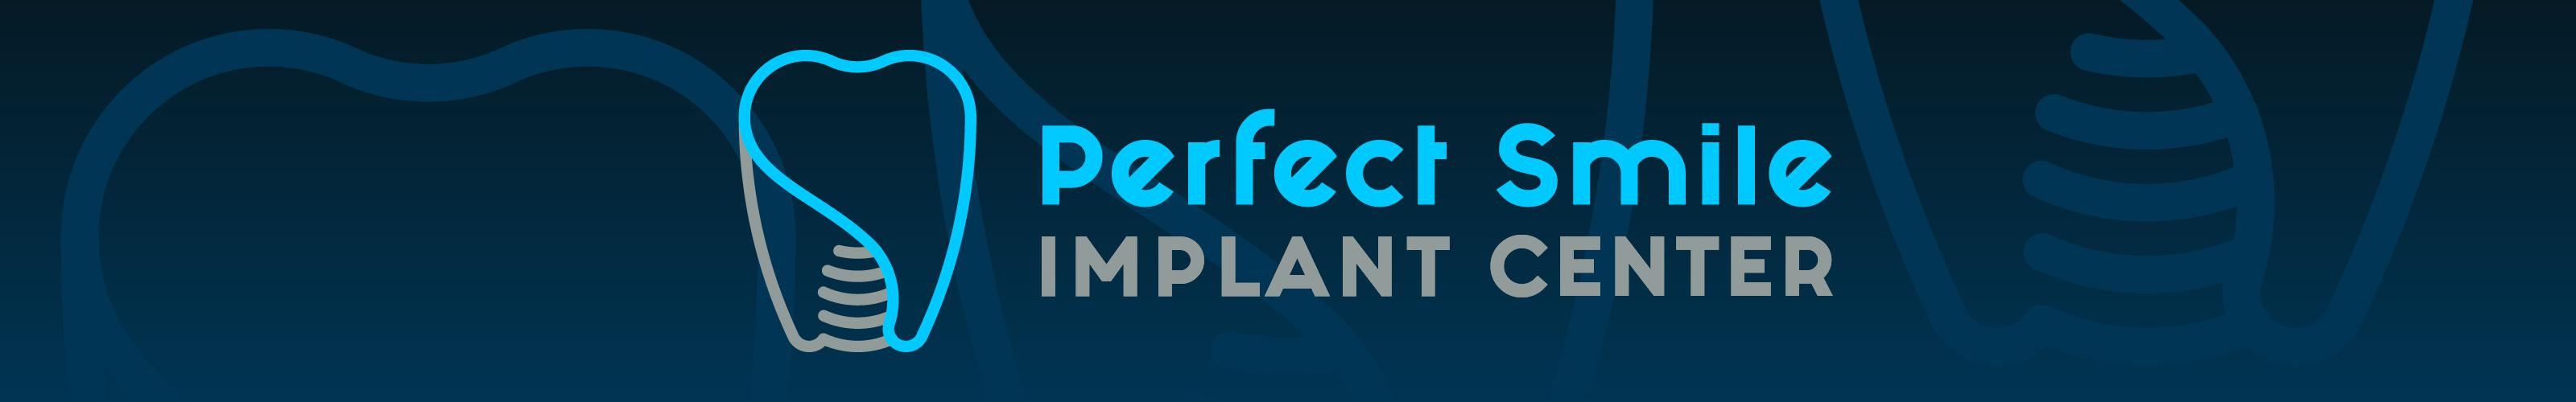 Perfect Smile Dental |Implant Center | Tijuana Dentistry Logo